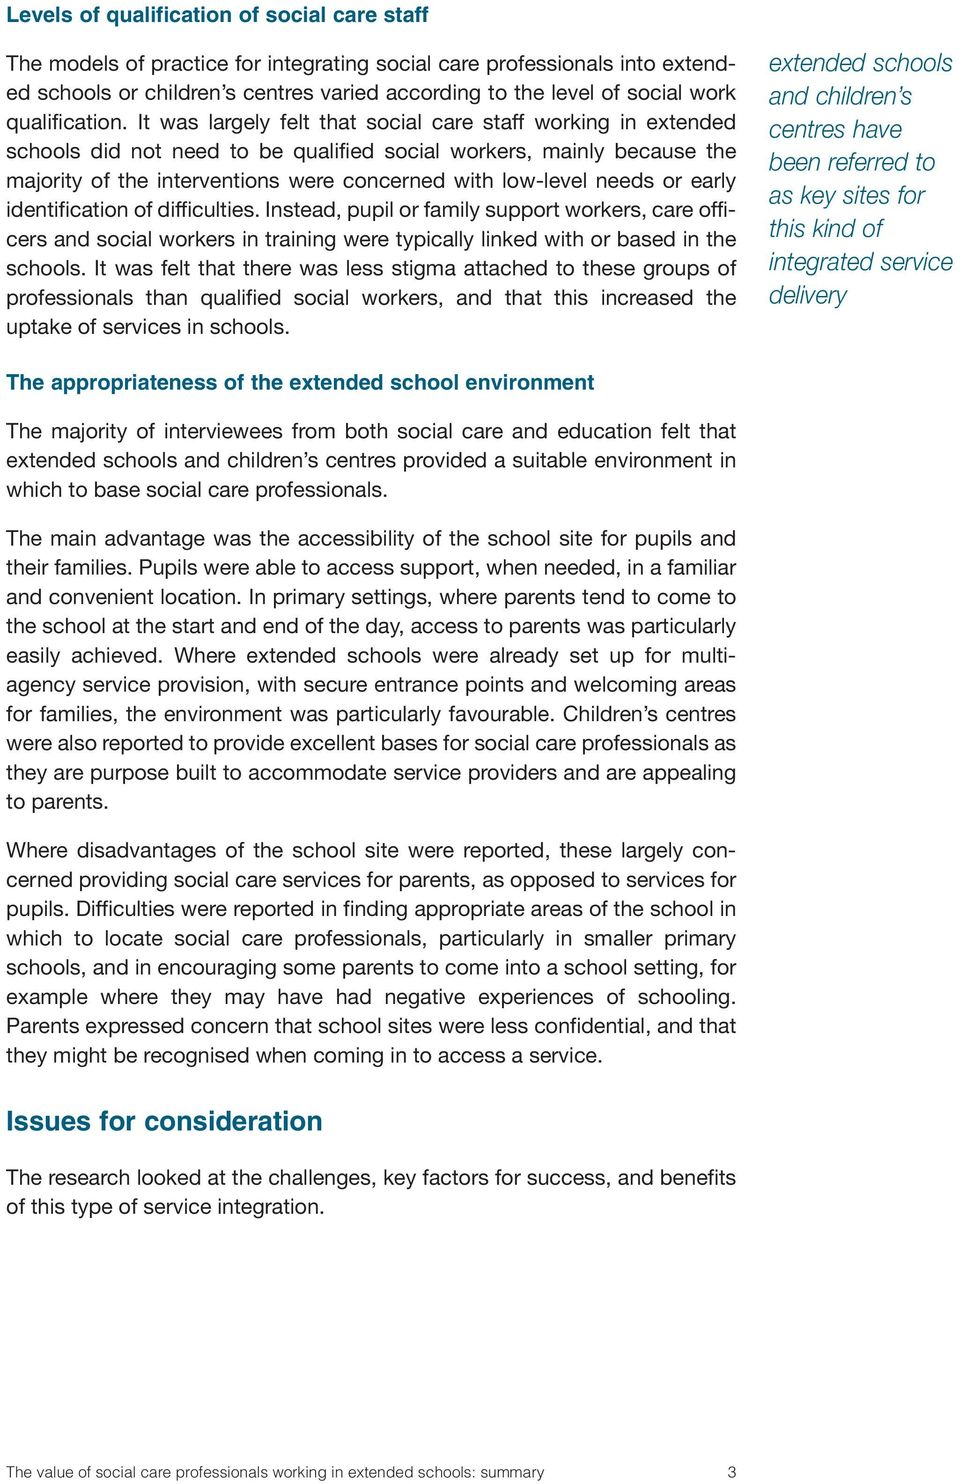 It was largely felt that social care staff working in extended schools did not need to be qualified social workers, mainly because the majority of the interventions were concerned with low-level